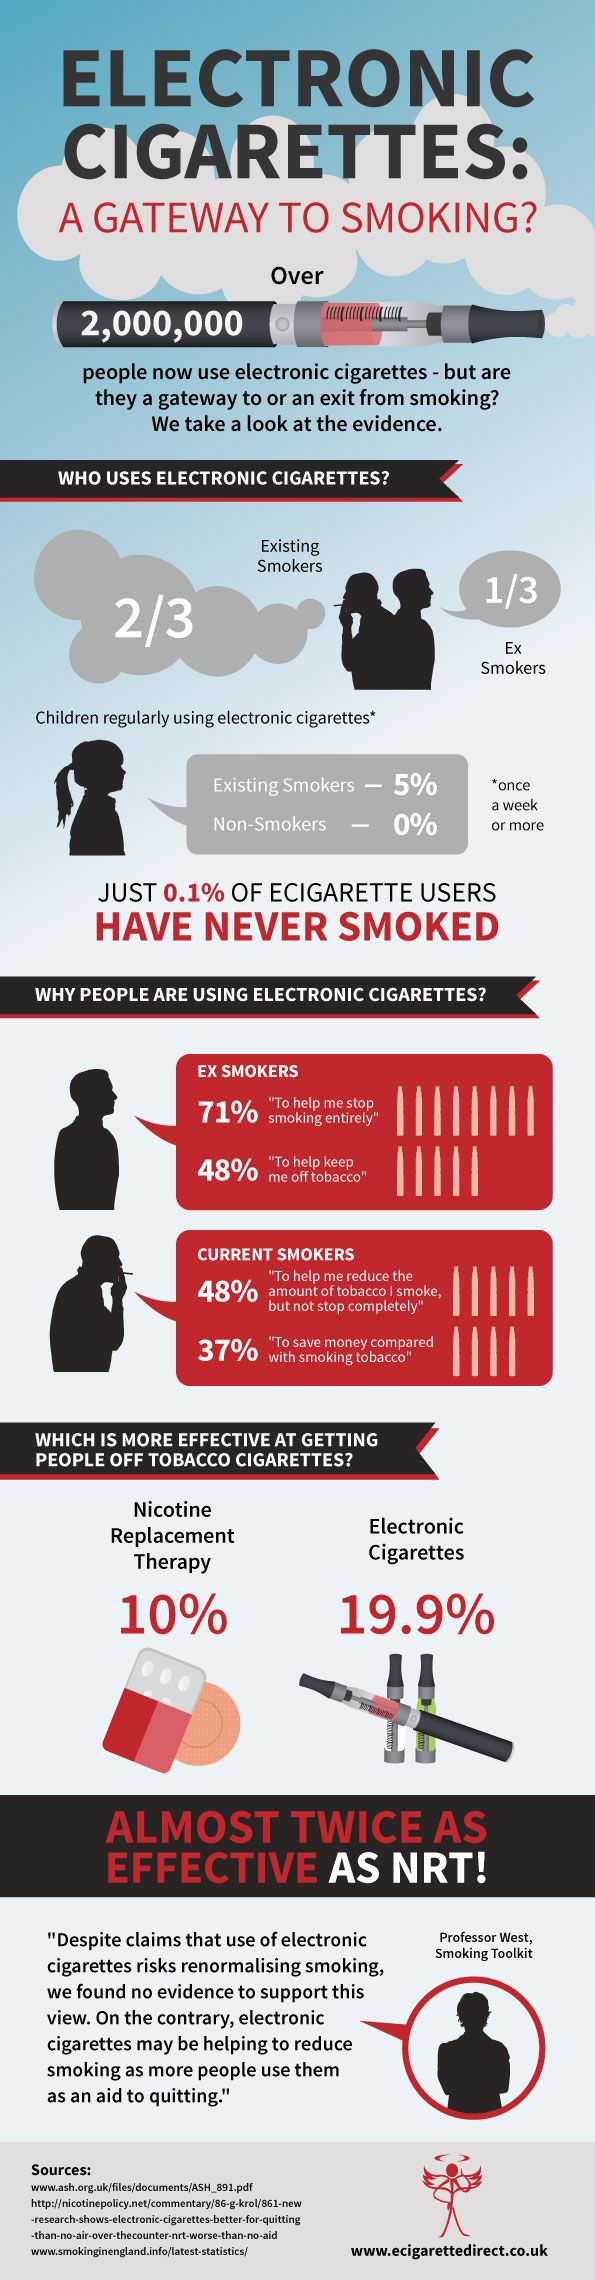 Diese Grafik zeigt die positiven Studienergebnisse von UK Action on Smoking and Health, Smoking in England and Nicotine Policy. Via: Ecigarettedirect.co.uk.   #ecigs #survey #evidence